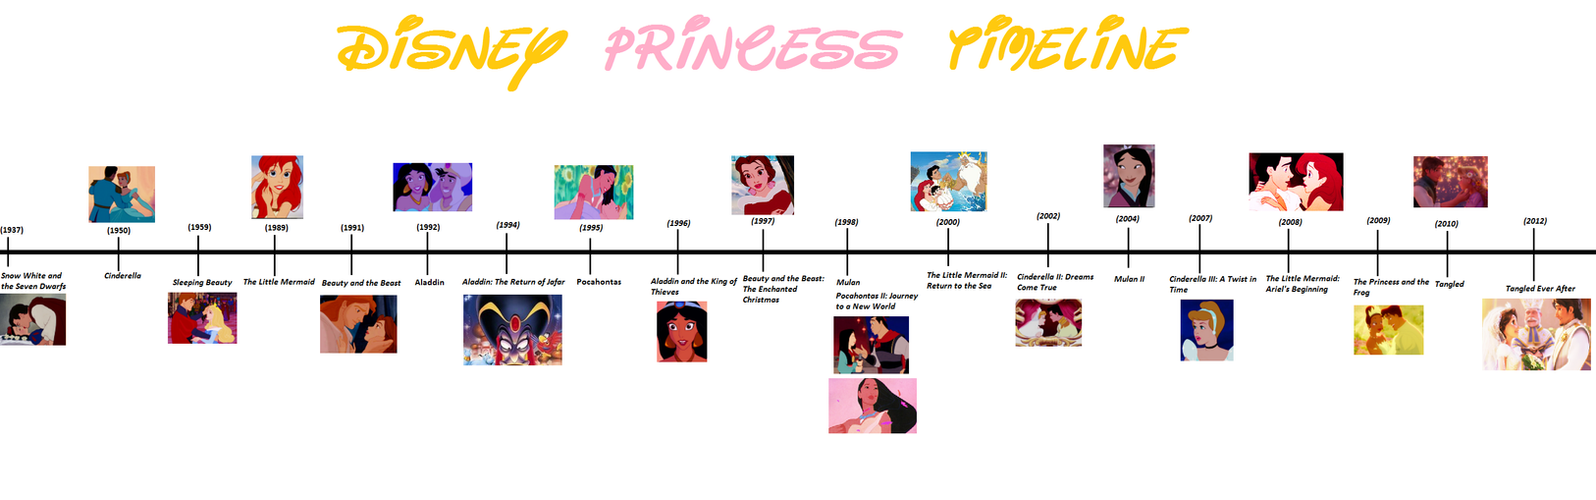 Pixar movie timeline